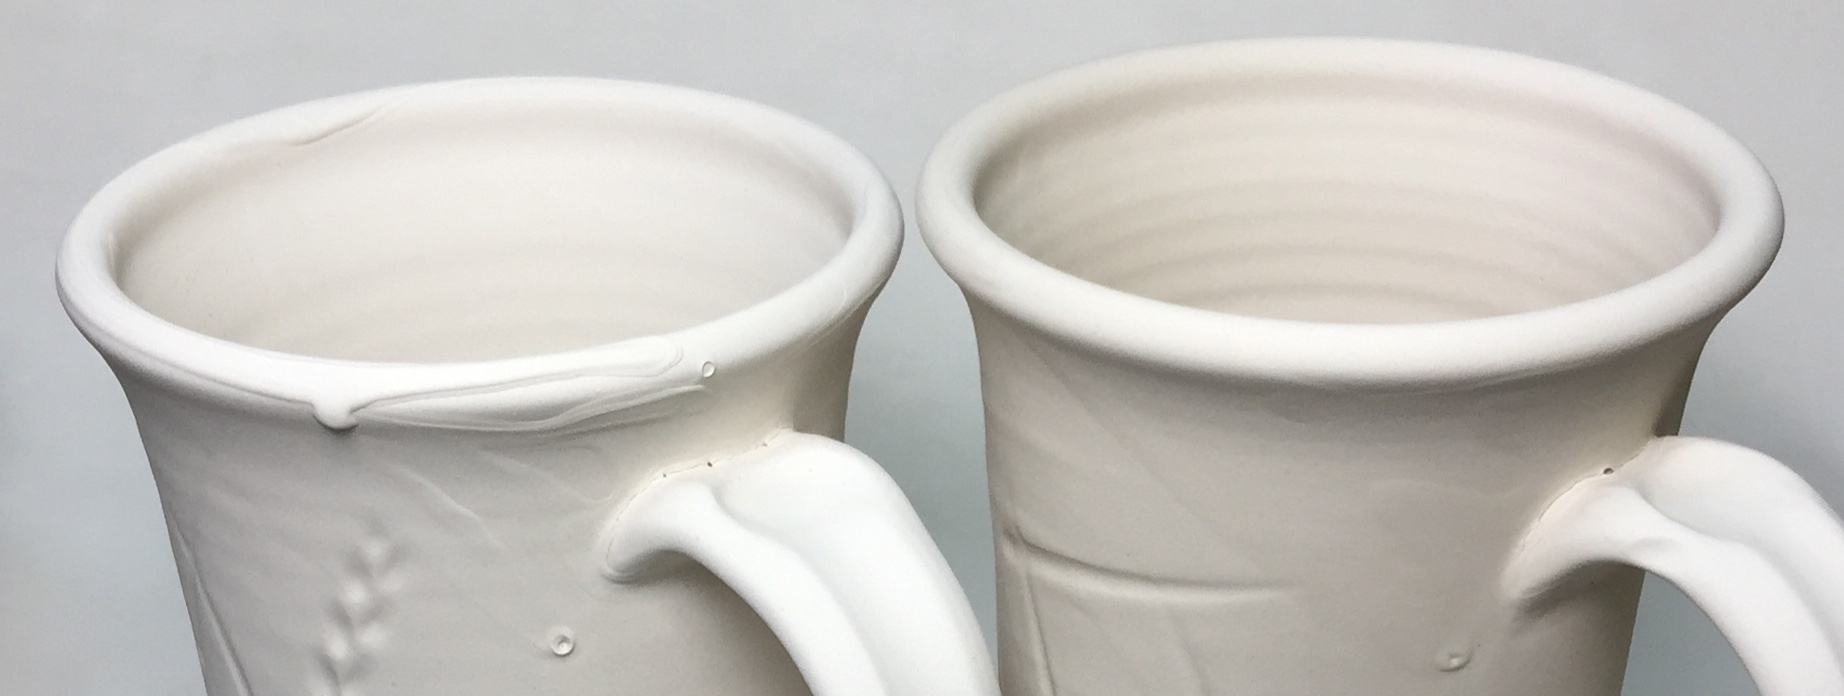 What to do when glazes dry-drip like this on the rims of ware